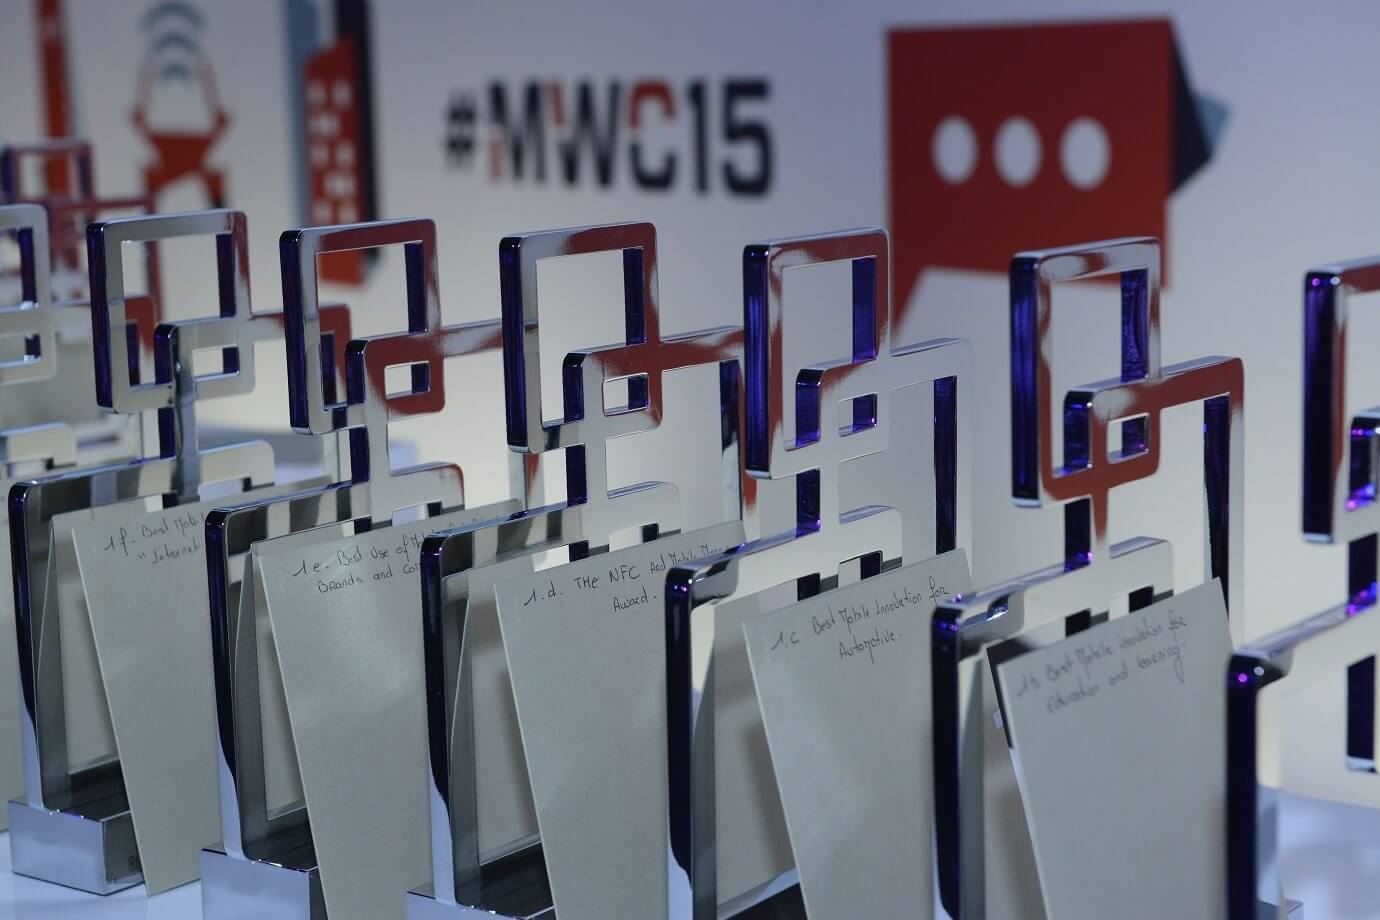 globalmobileawards2015 - MWC15: iPhone 6 e LG G3 vencem o Global Mobile Awards